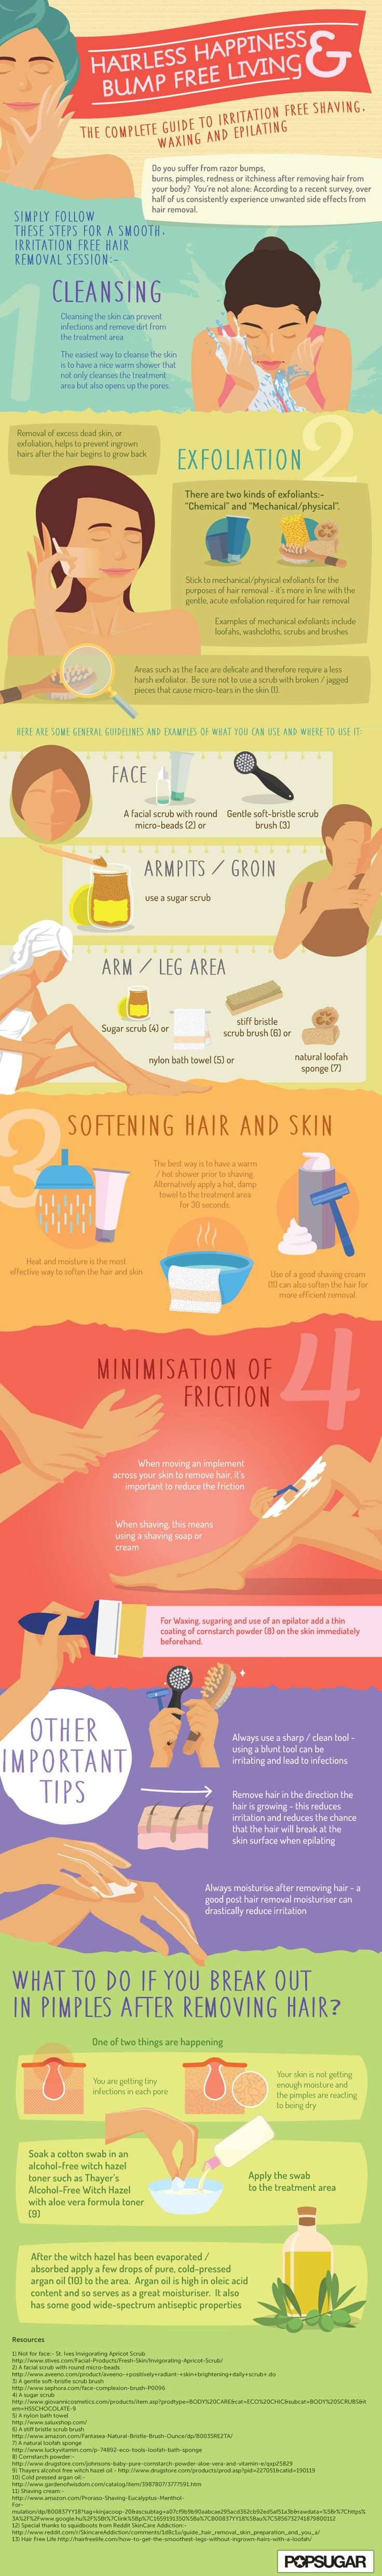 5-Minute Hair-Removal Tips That Will Guarantee a Bump-Free Beach Bod